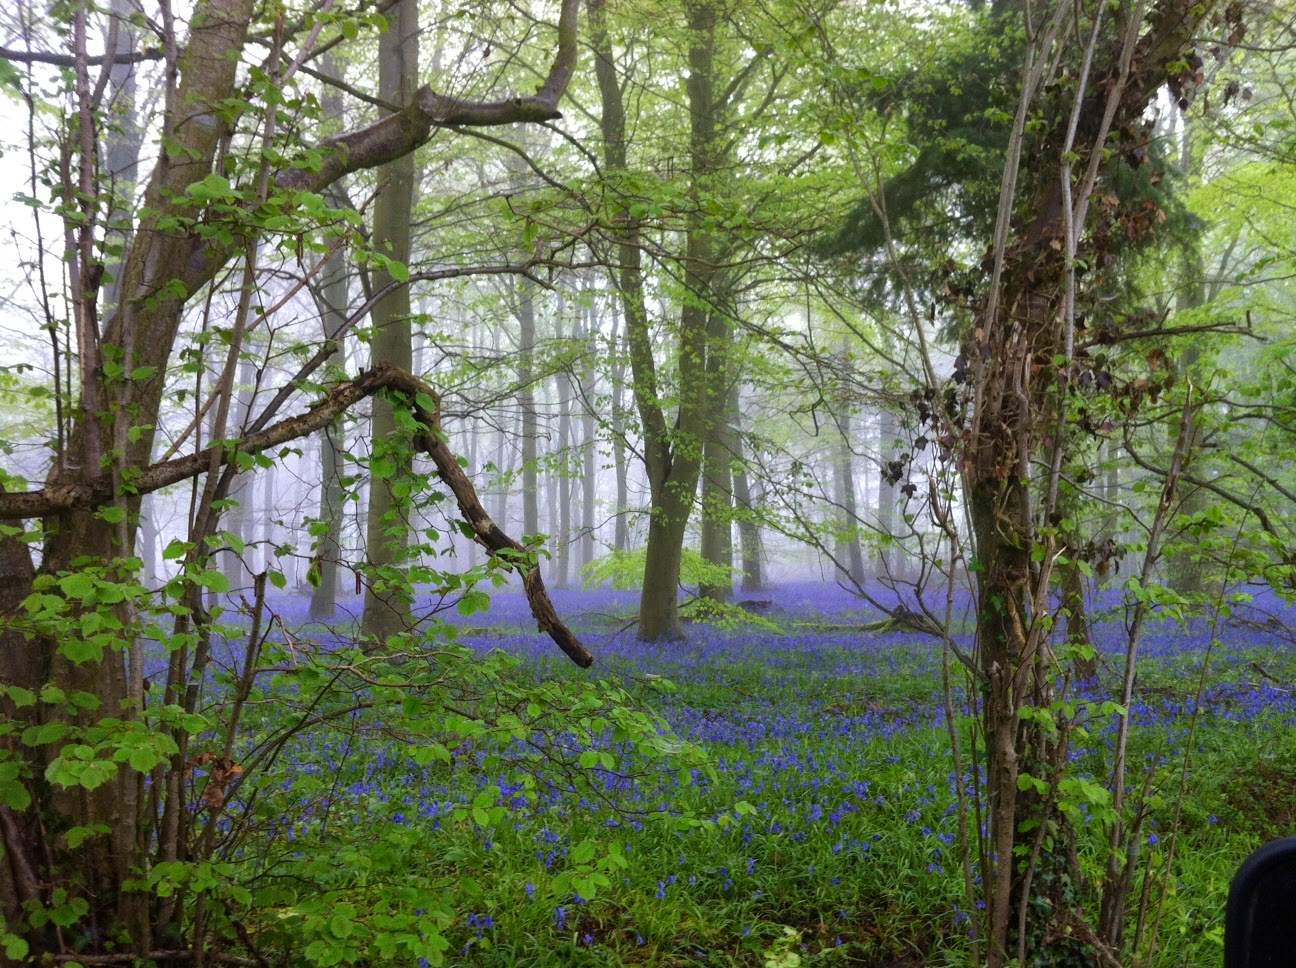 Native bluebells in the mist of an Ancient woodland